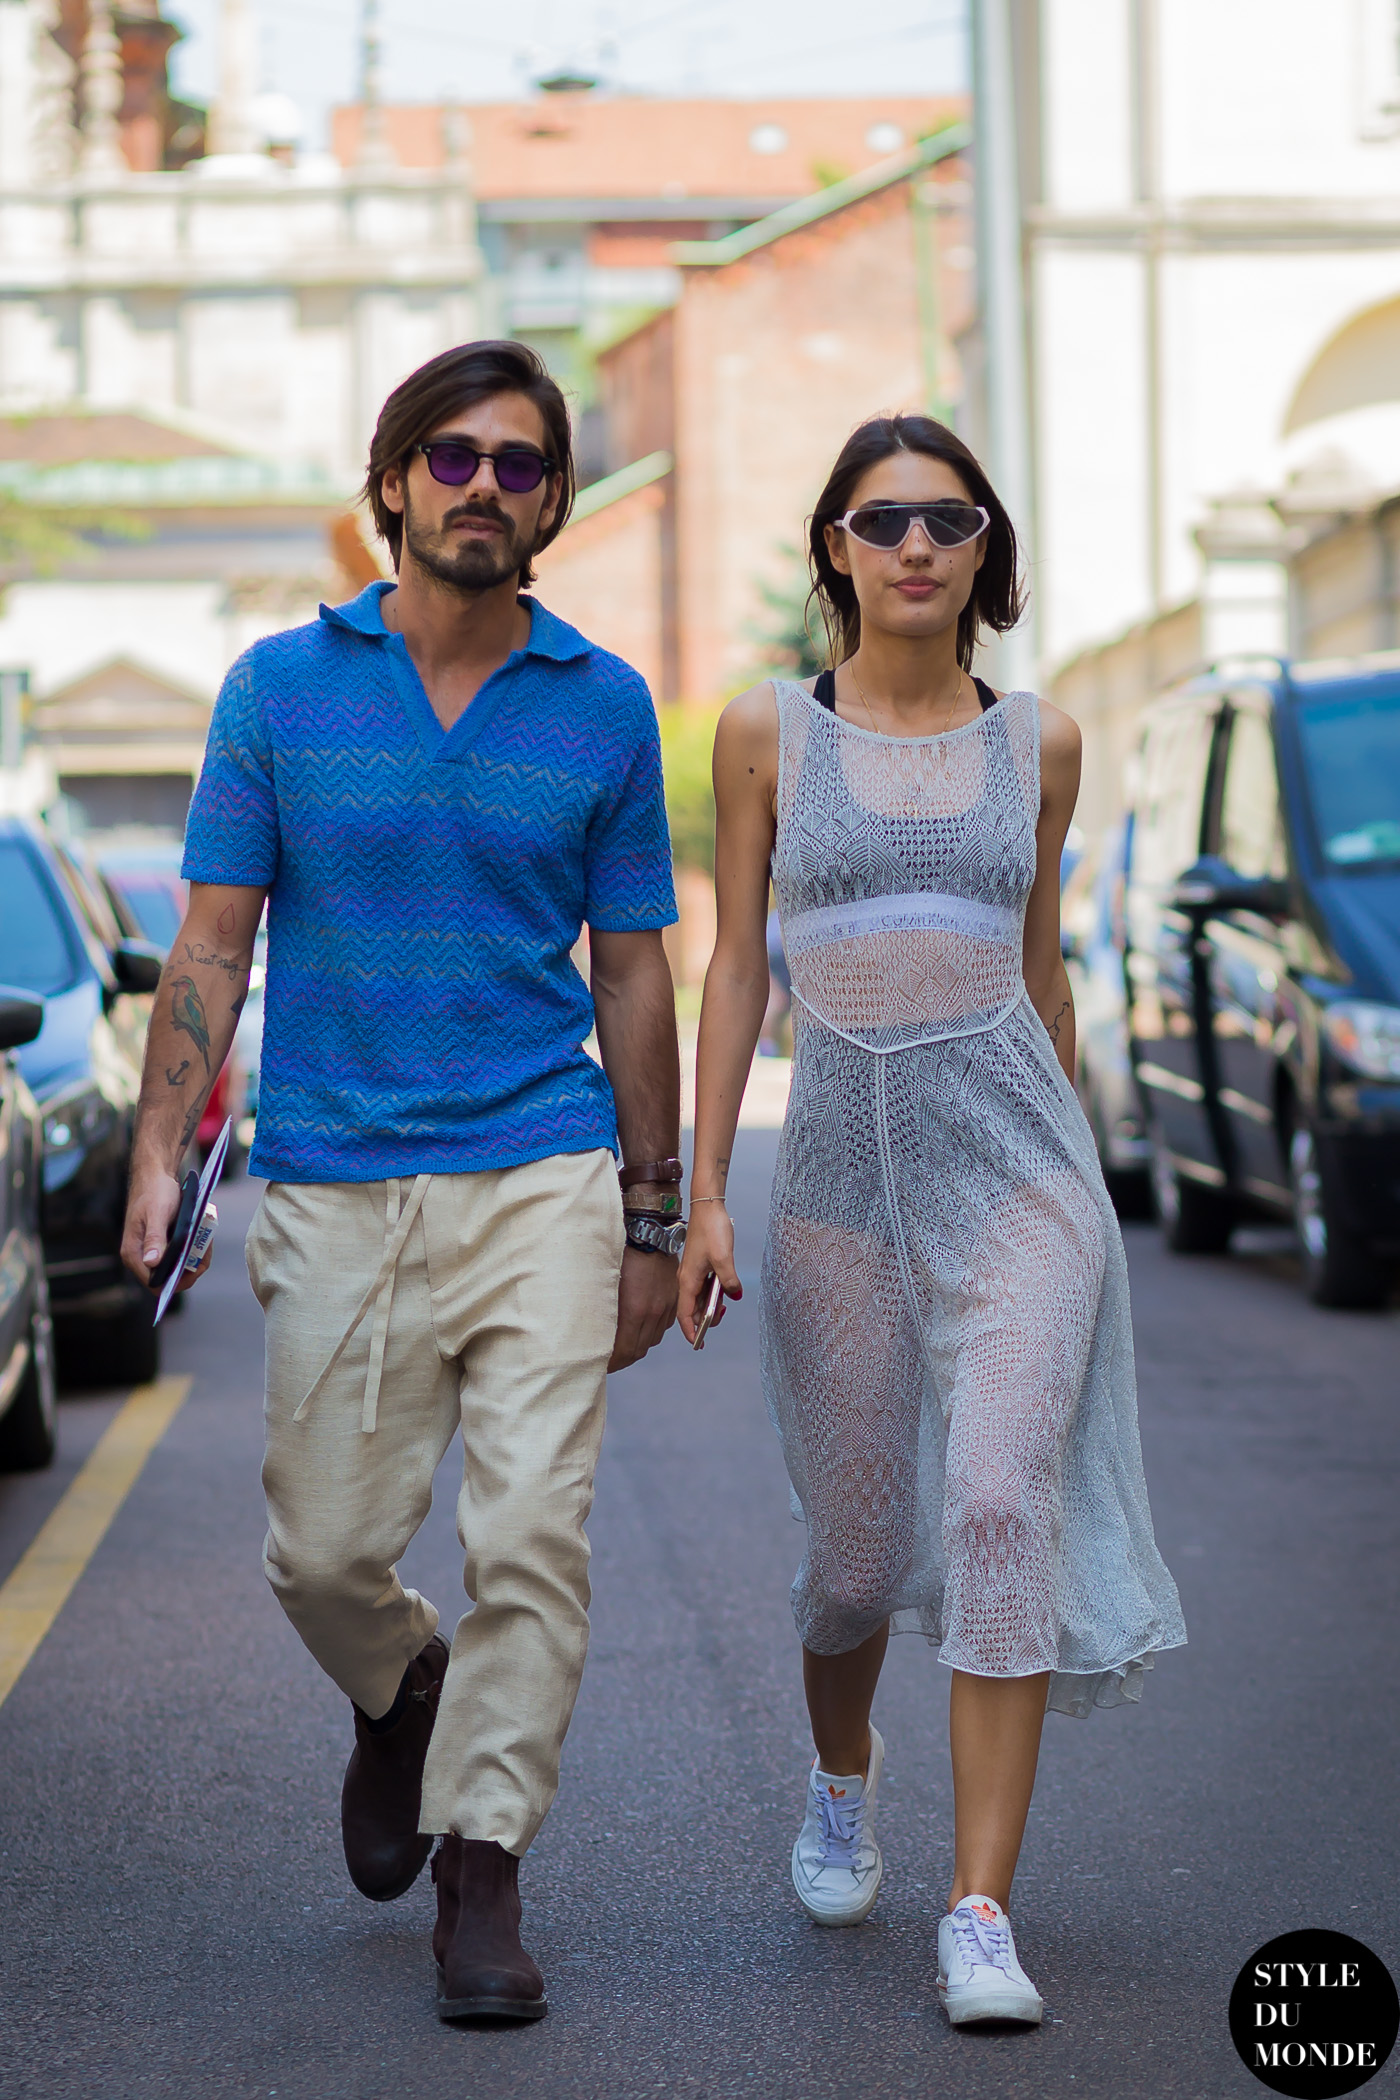 Patricia Manfield & Giotto Calendoli Street Style Street Fashion Streetsnaps by STYLEDUMONDE Street Style Fashion Photography